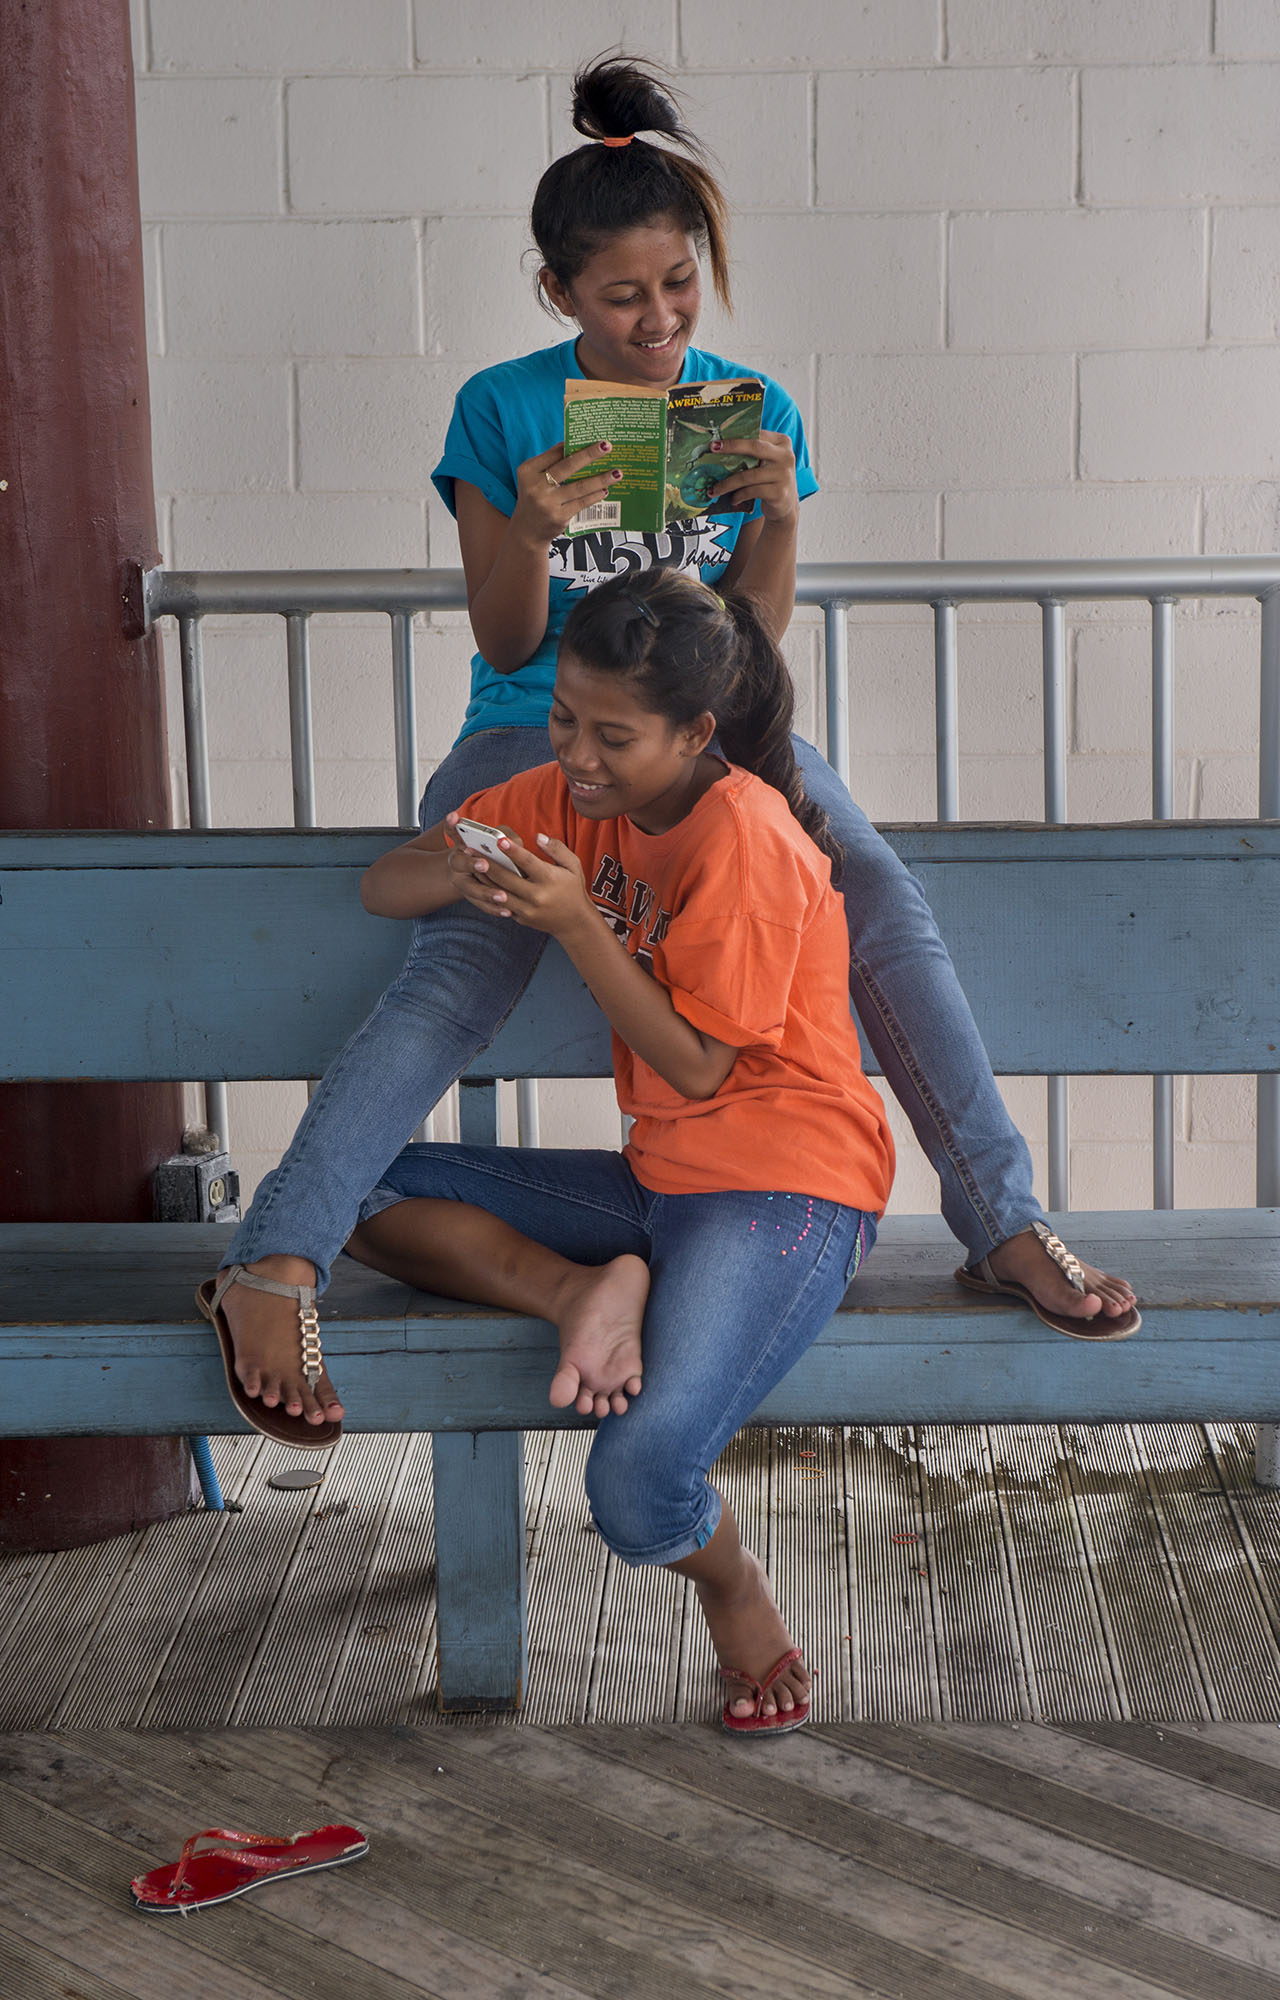 <p>Students at the College of the Marshall Islands on Majuro. There are only a few institutions of higher learning in Micronesia, so many come to the U.S. for college.</p>